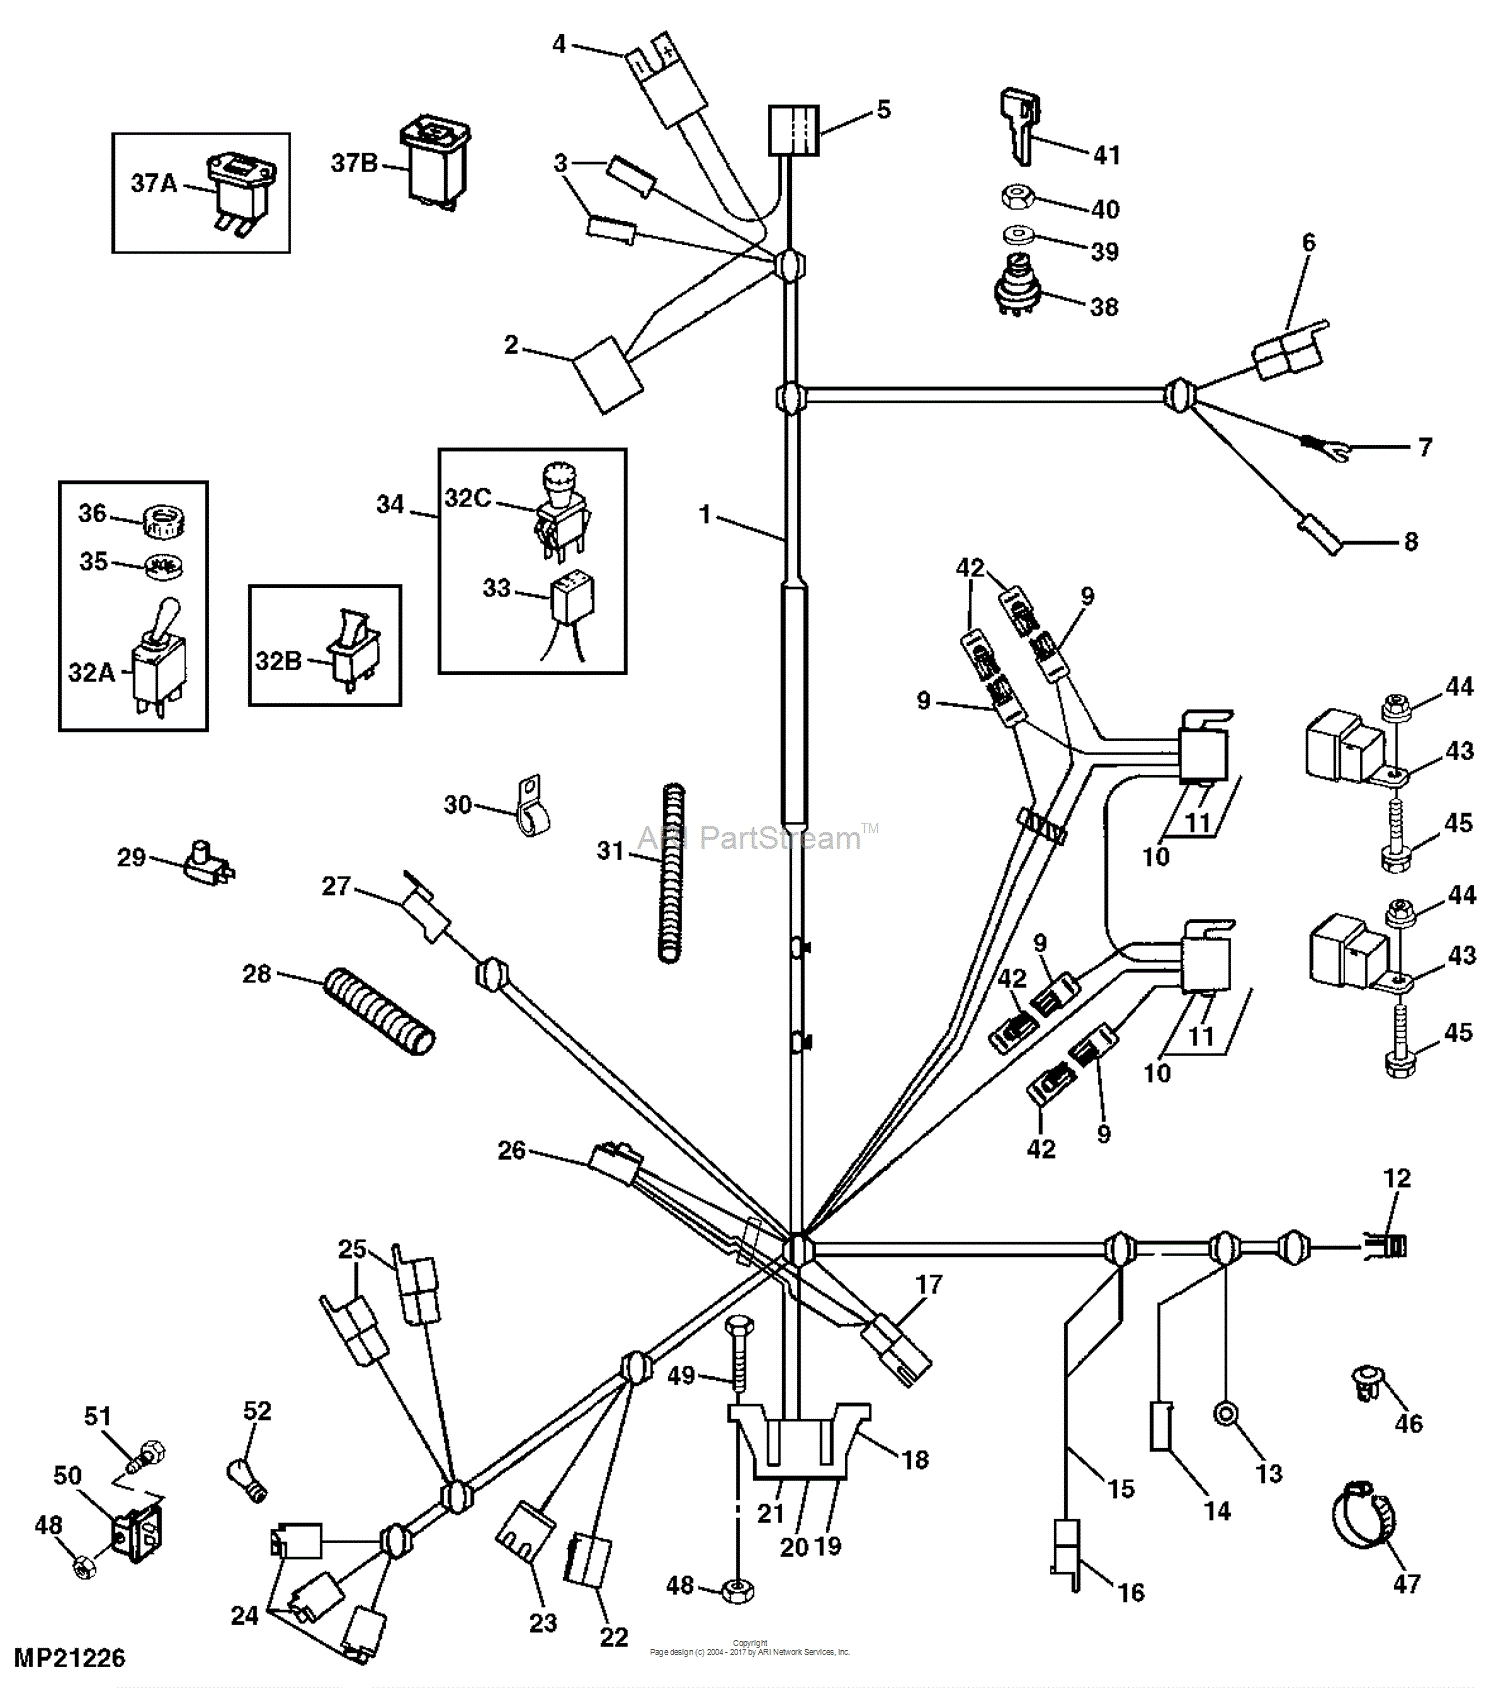 john deere f525 wiring diagram Collection-John Deere Parts Diagrams F525 Front Mower W Out 7-a